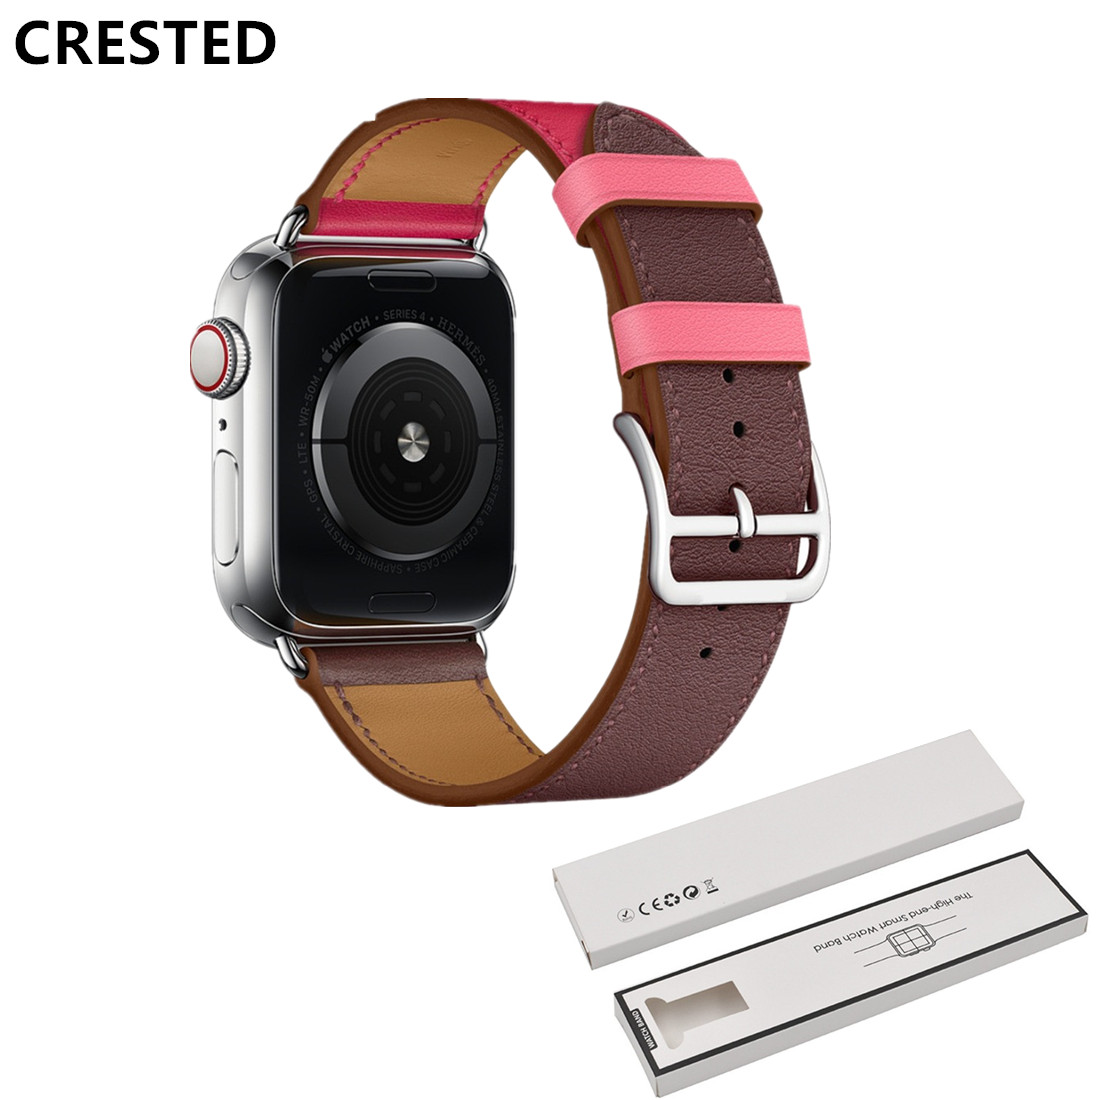 CRESTED single tour Leather strap For Apple Watch band 5 4 44mm 40mm bracelet iwatch series 3/2/1 42mm 38mm Wrist bracelet belt